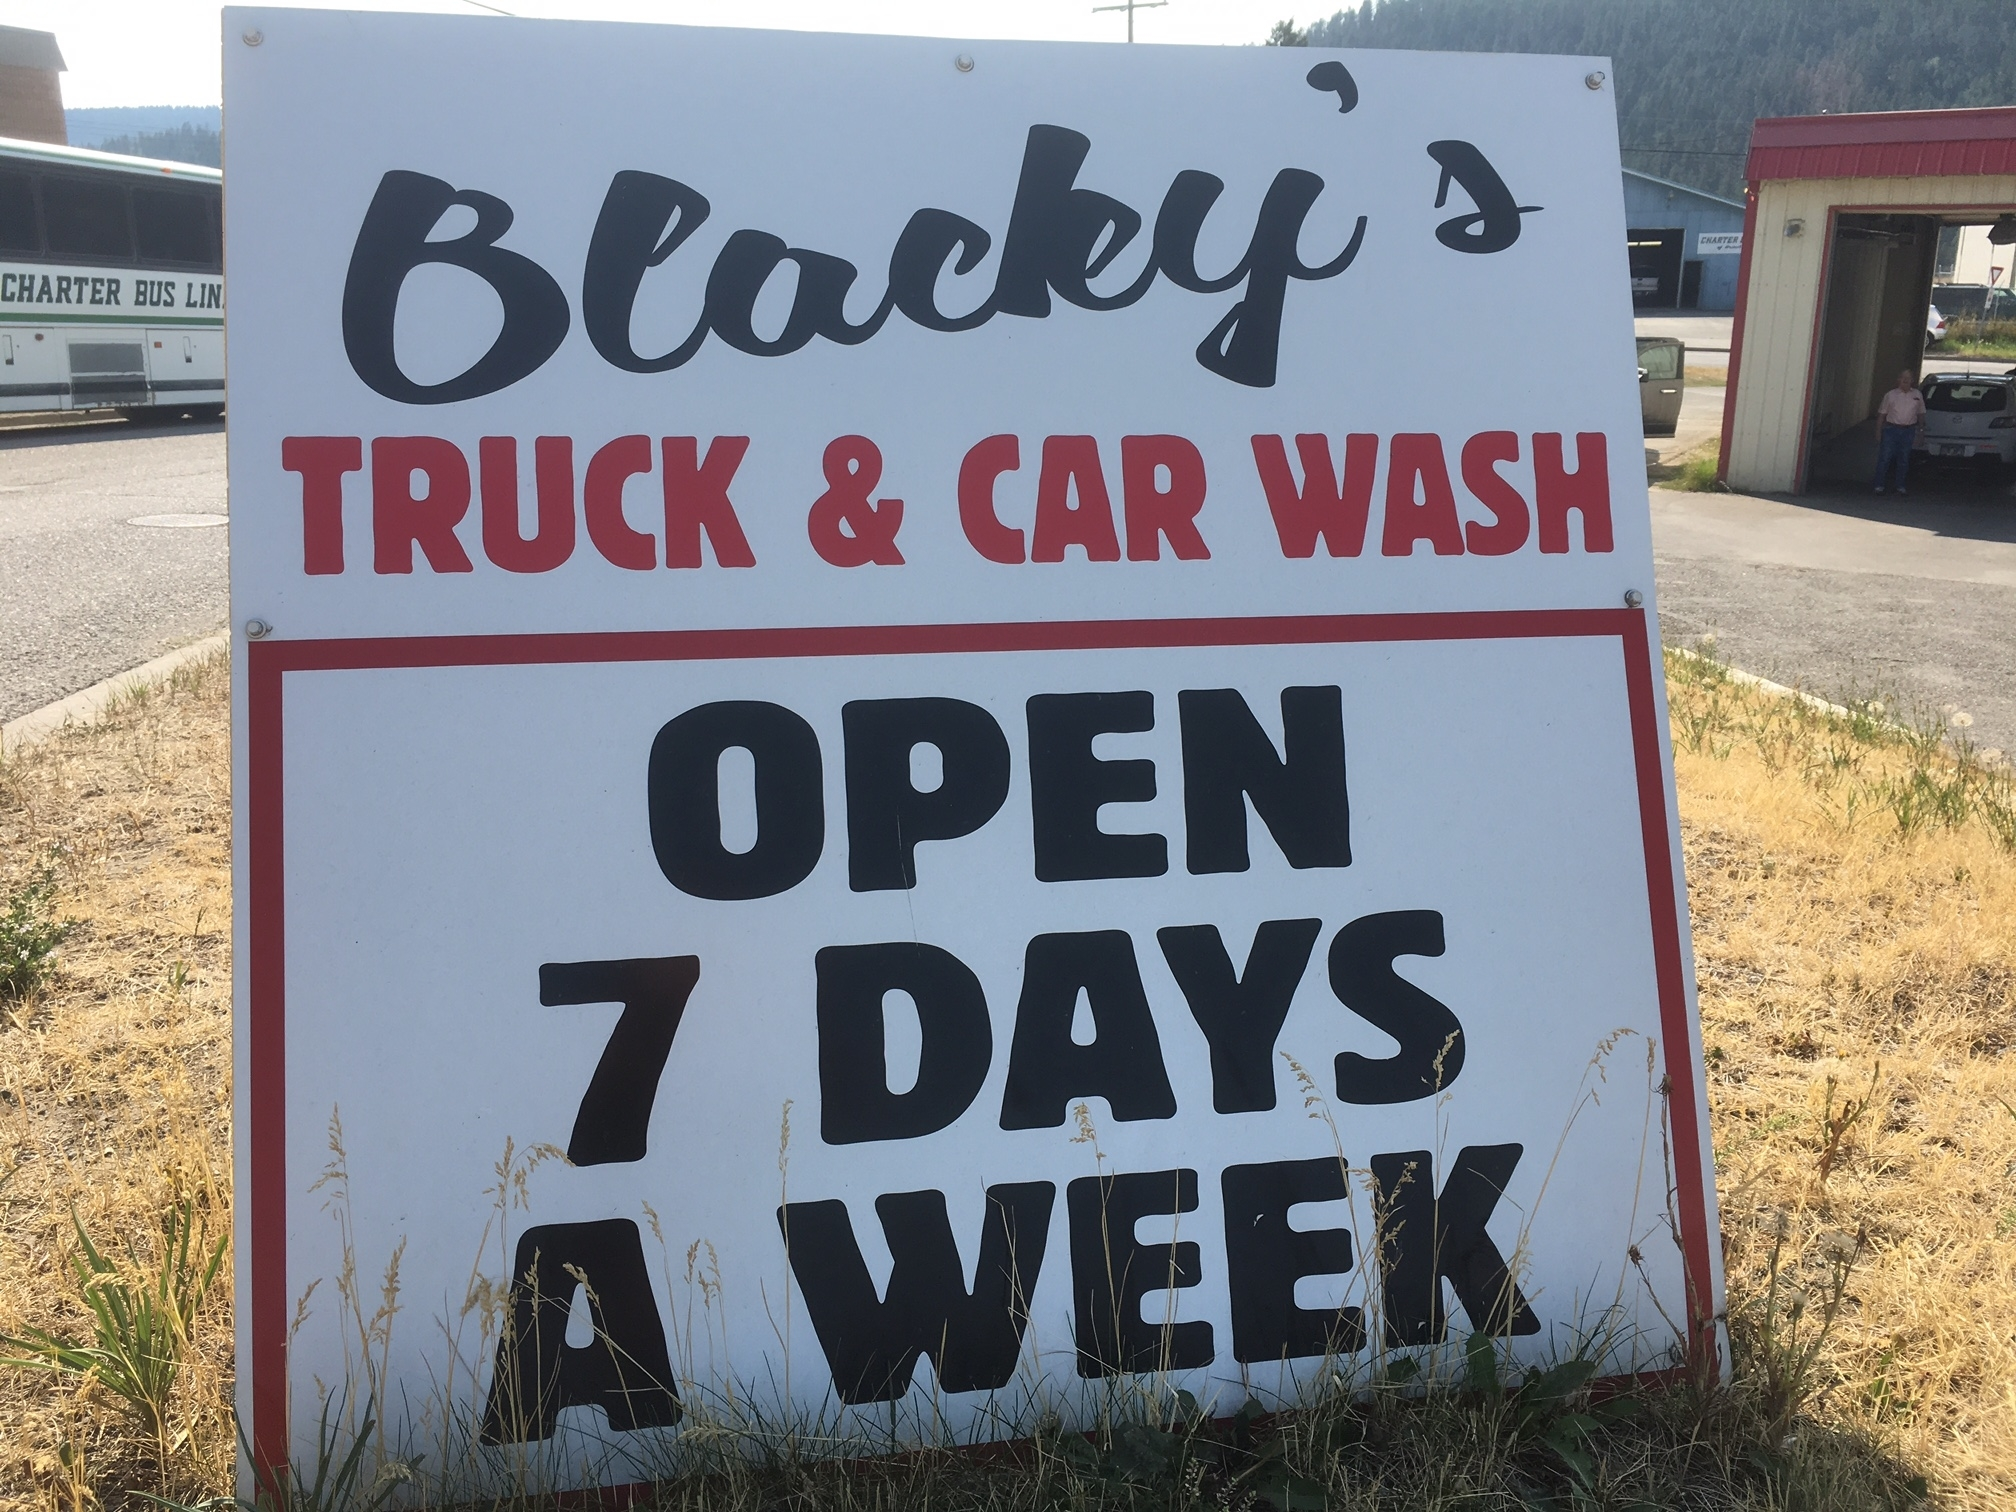 Blacky's Truck & Car Wash